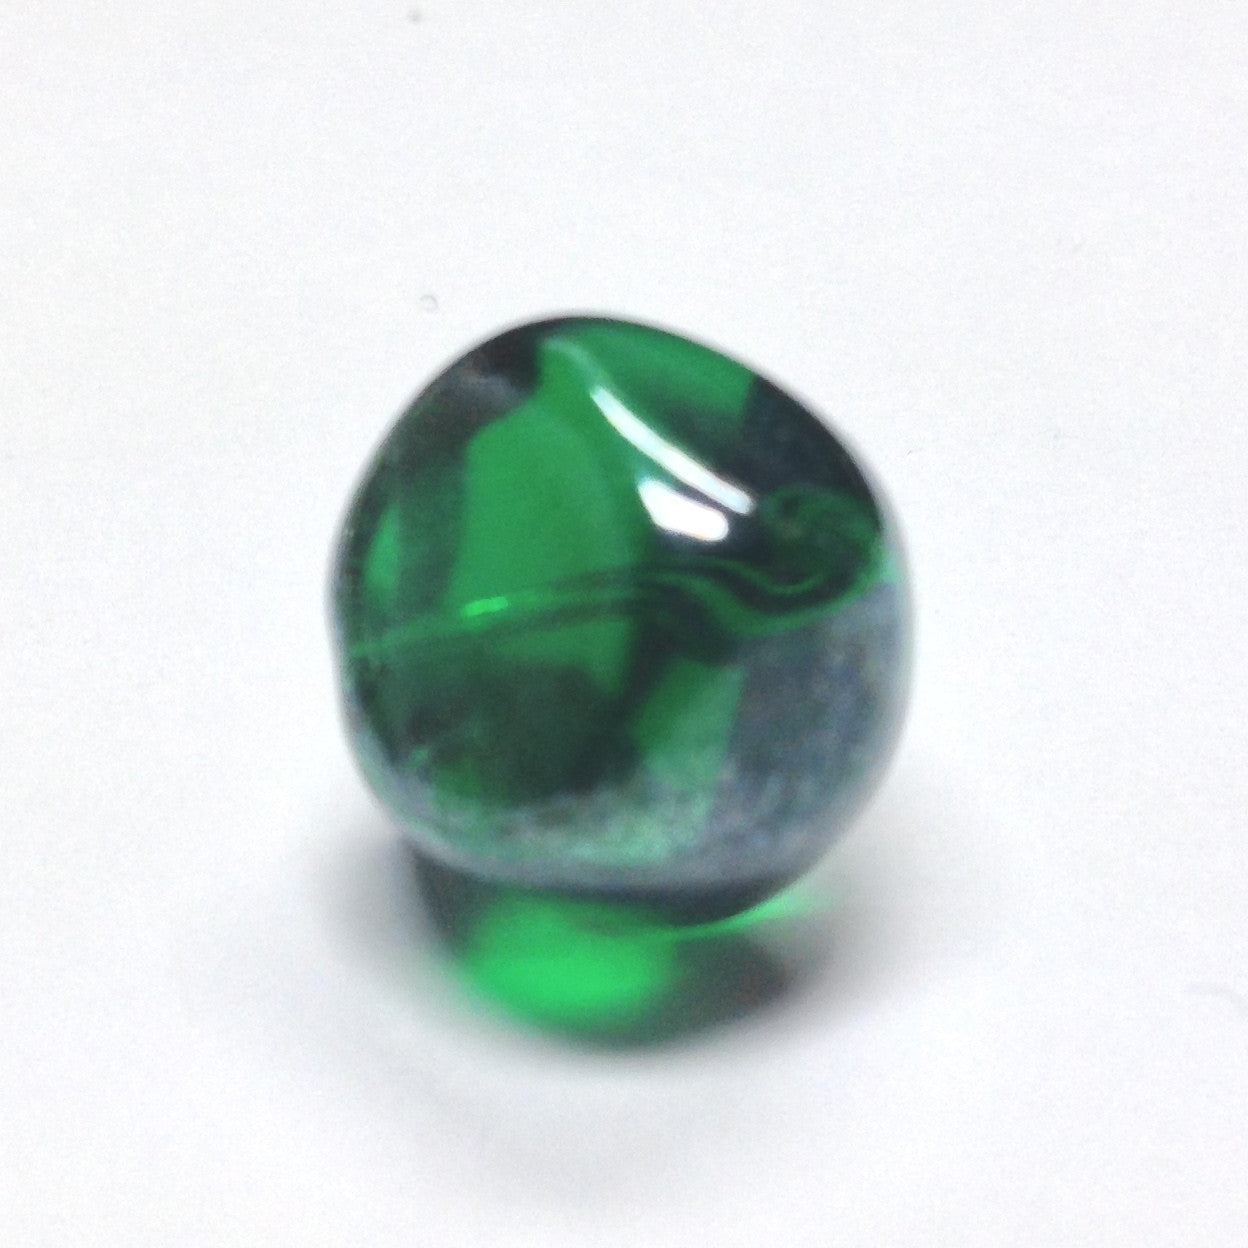 8MM Emerald Green Glass Nugget Bead (72 pieces)